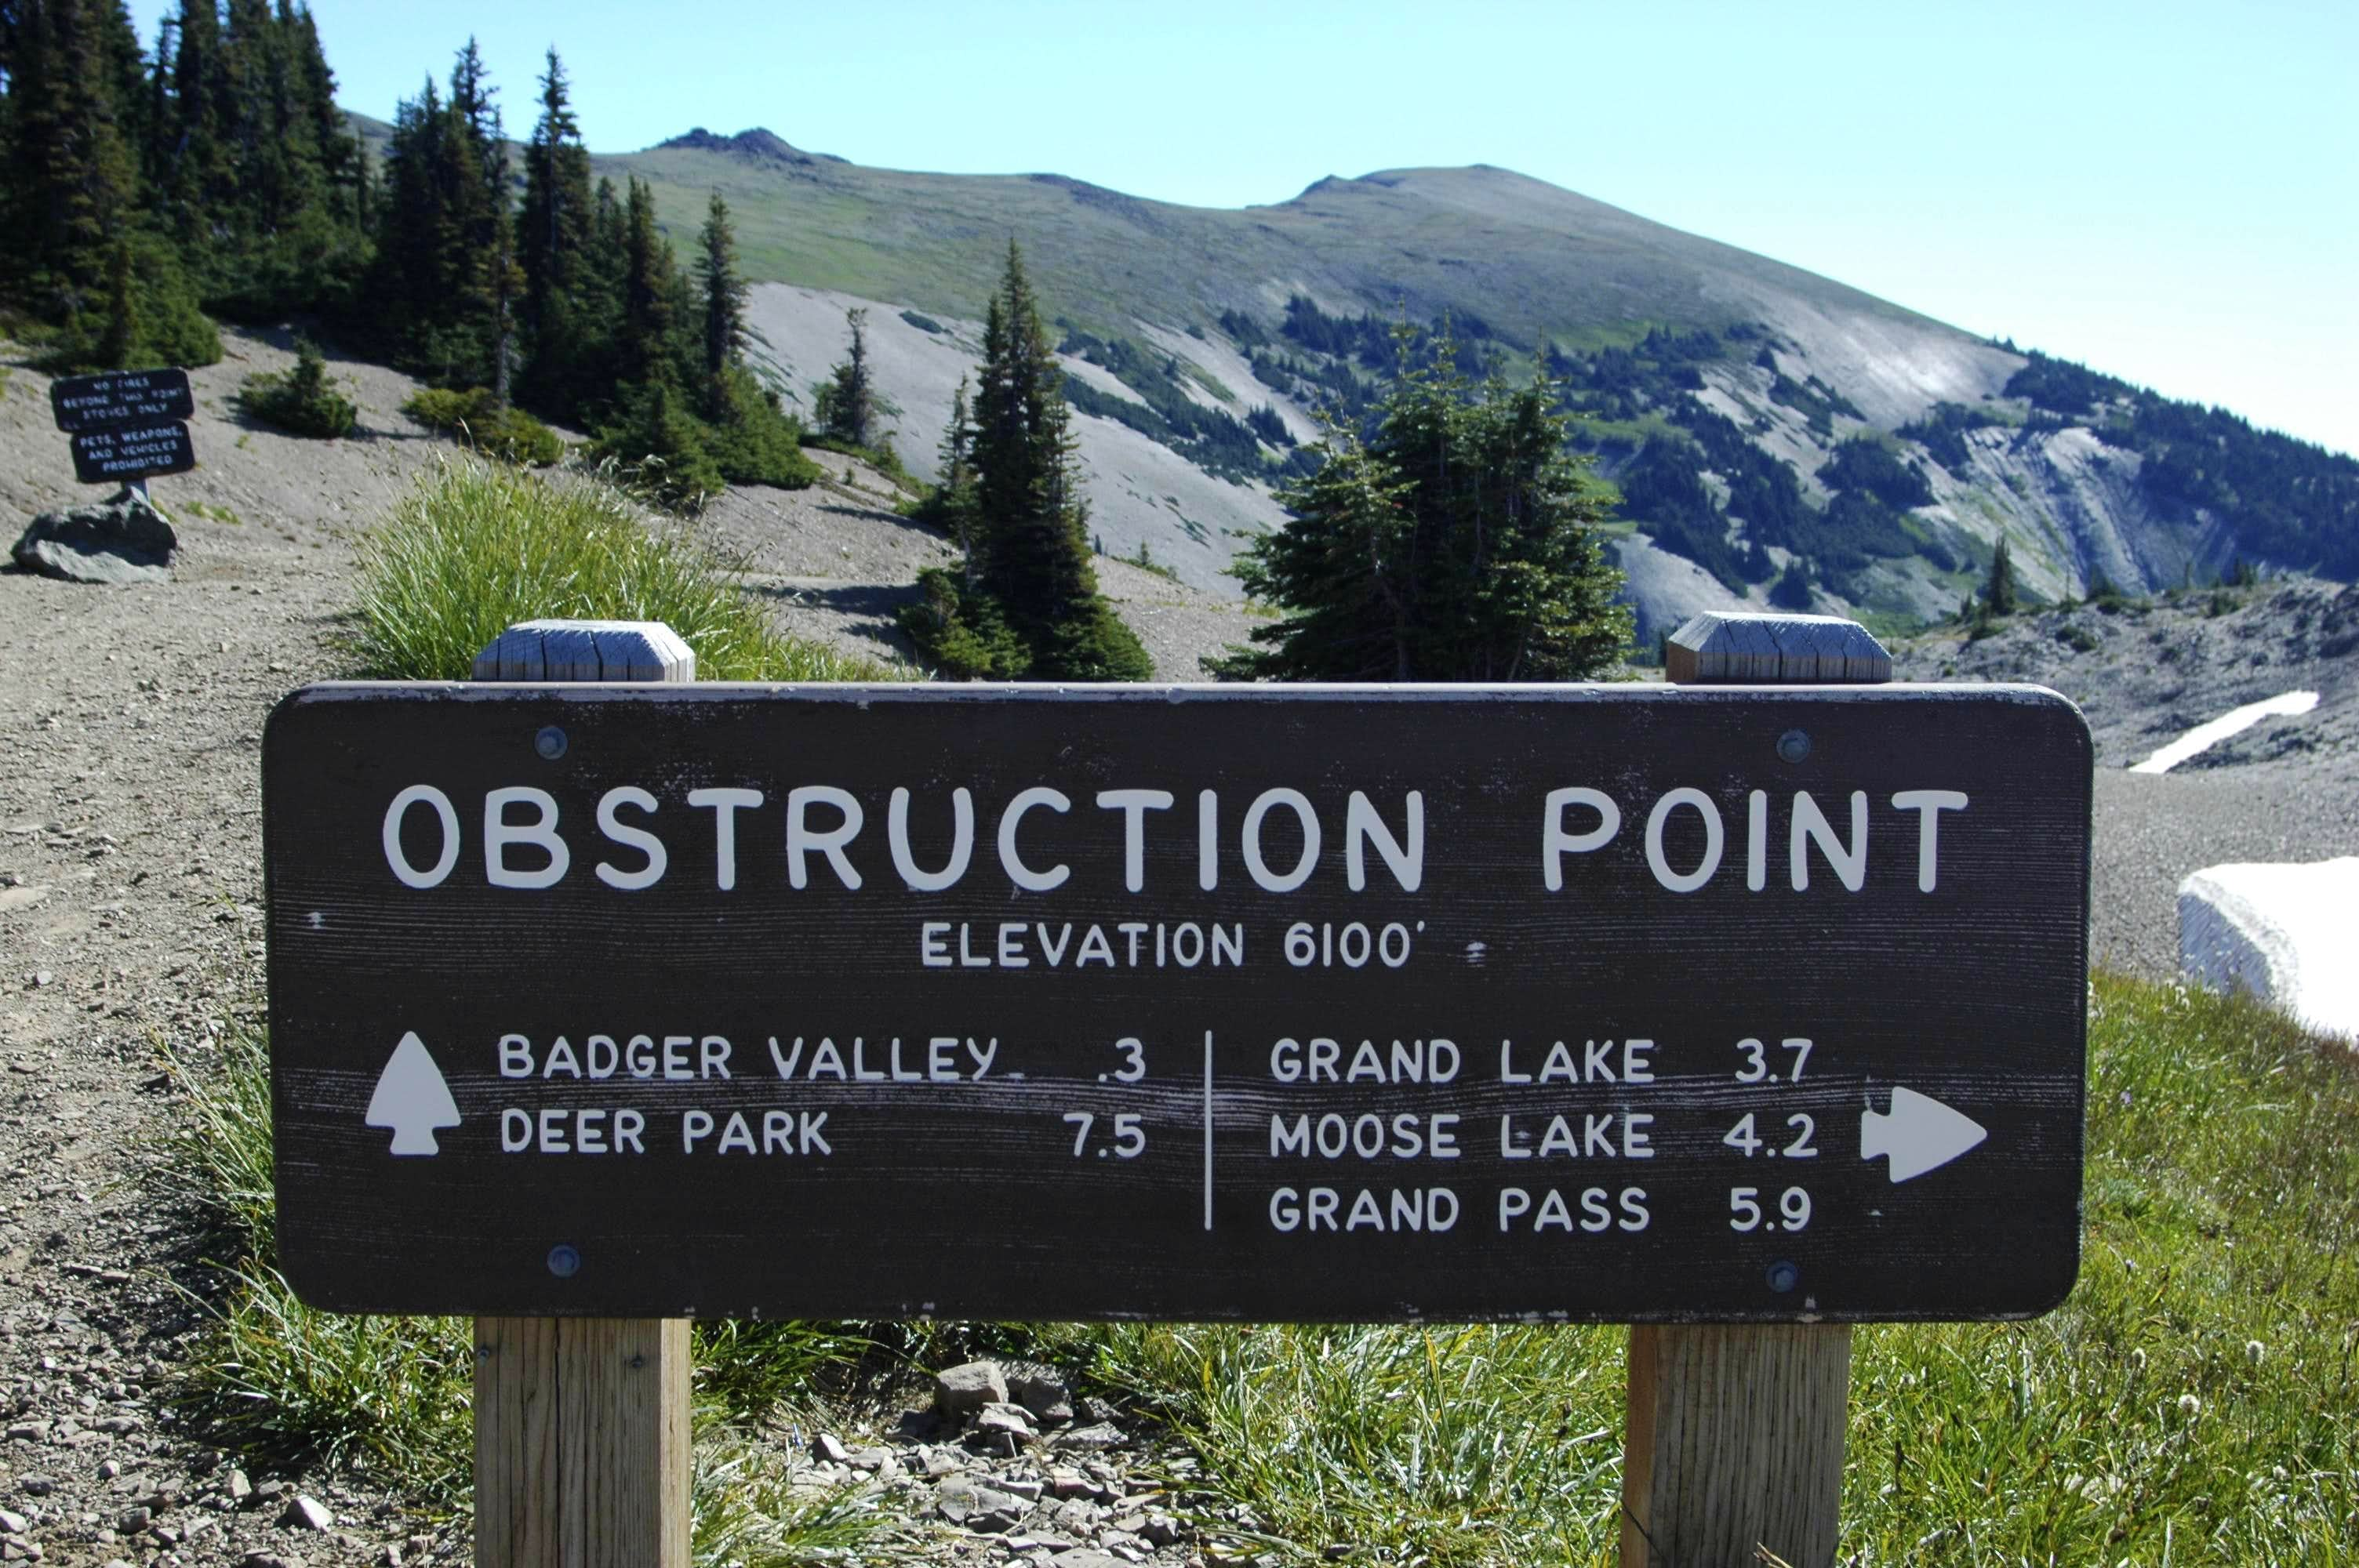 Obstruction Point